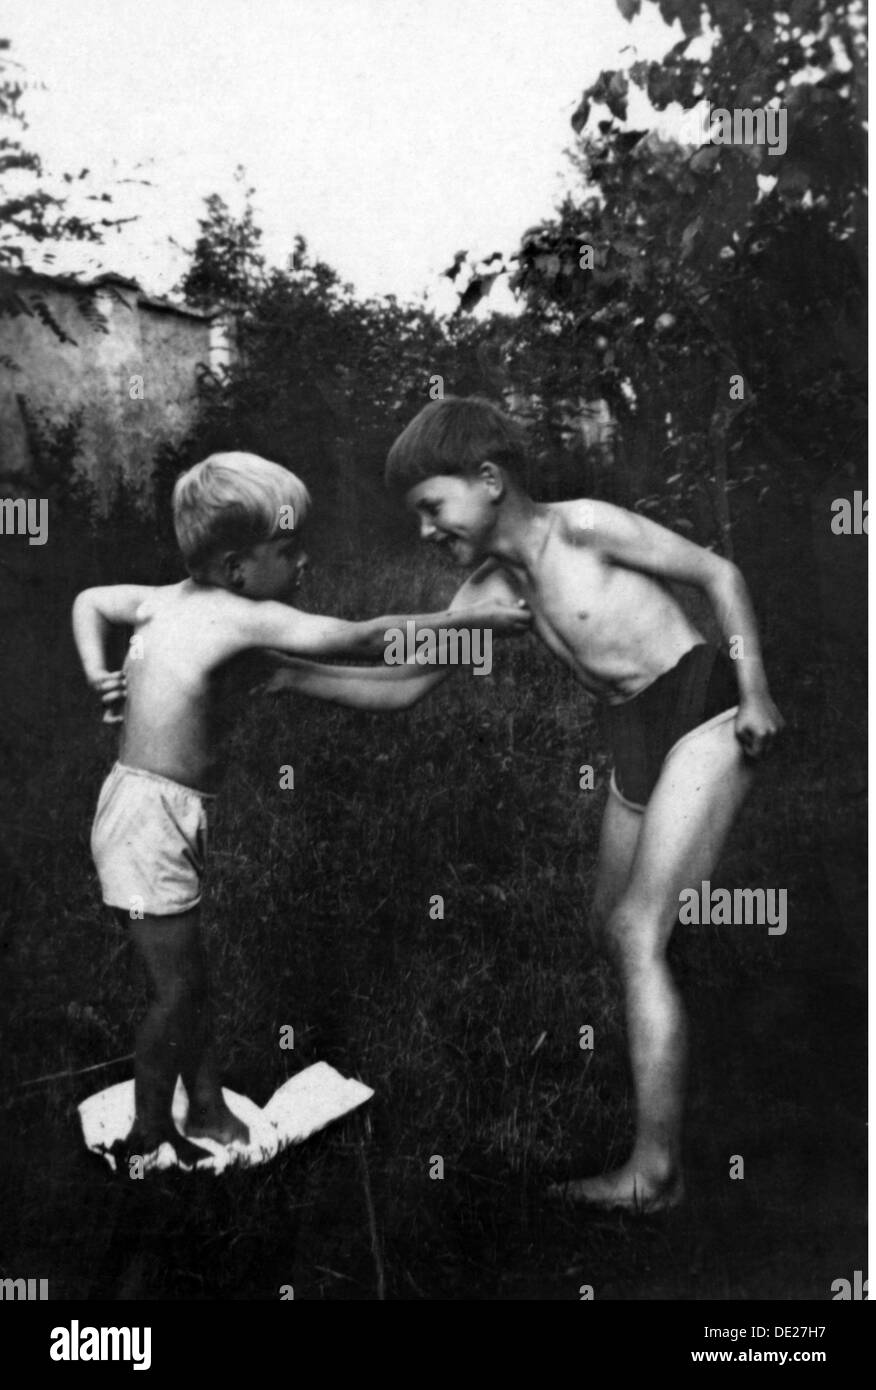 people, child / children, siblings, brothers boxing playfully, 1920s